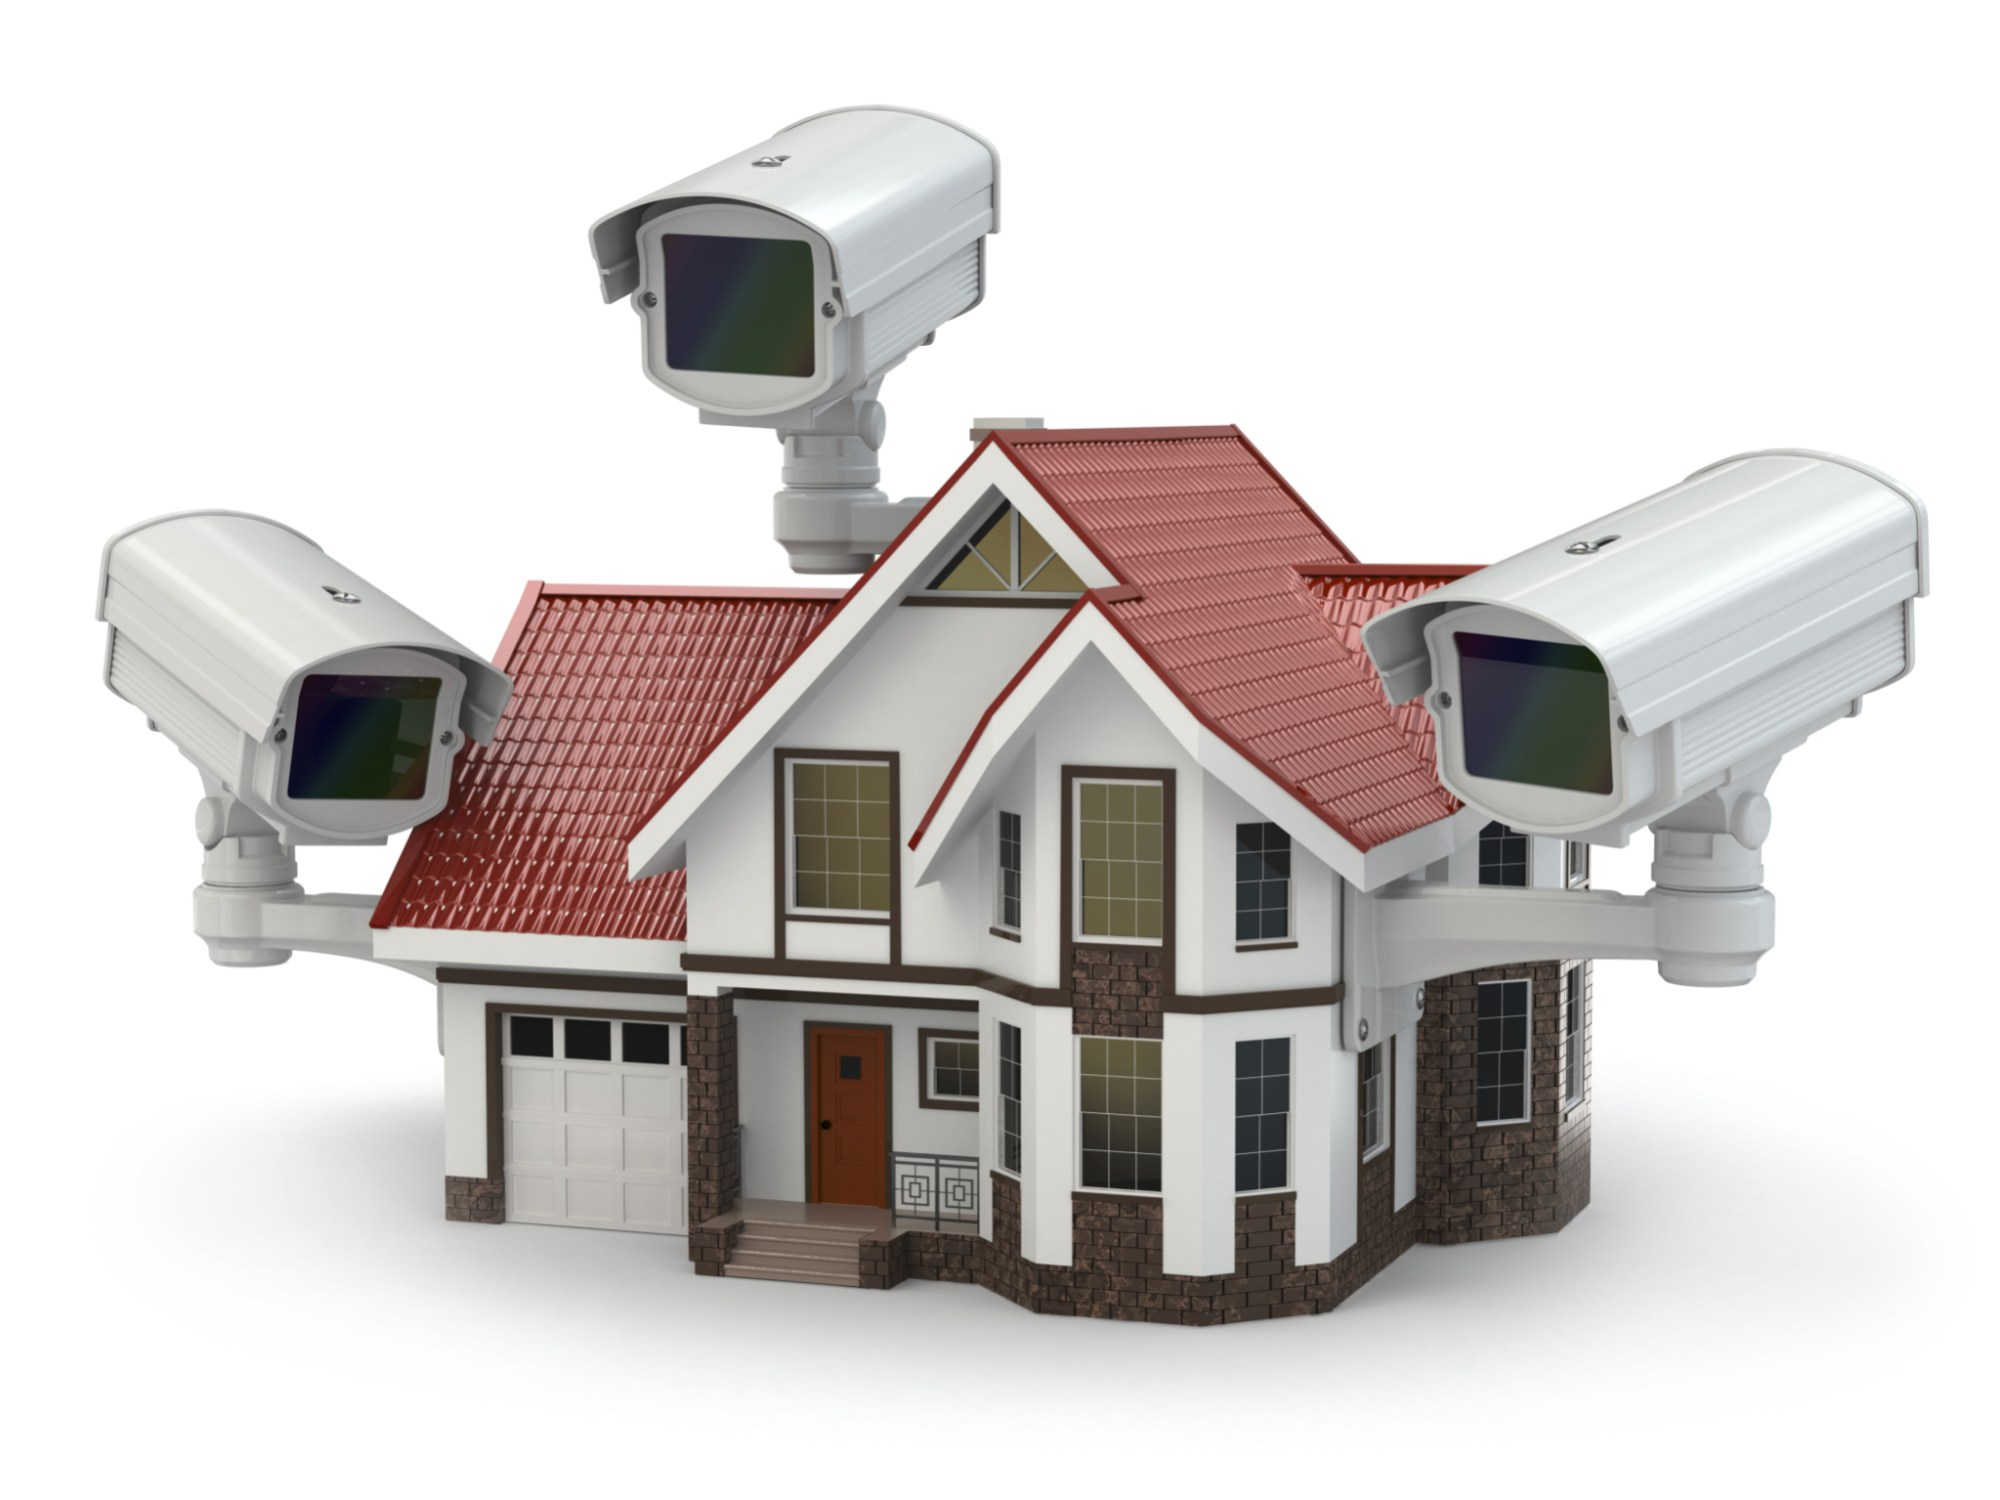 hight resolution of the dos and don ts of installing home surveillance cameras home security wireless video cameras home security wireless video cameras